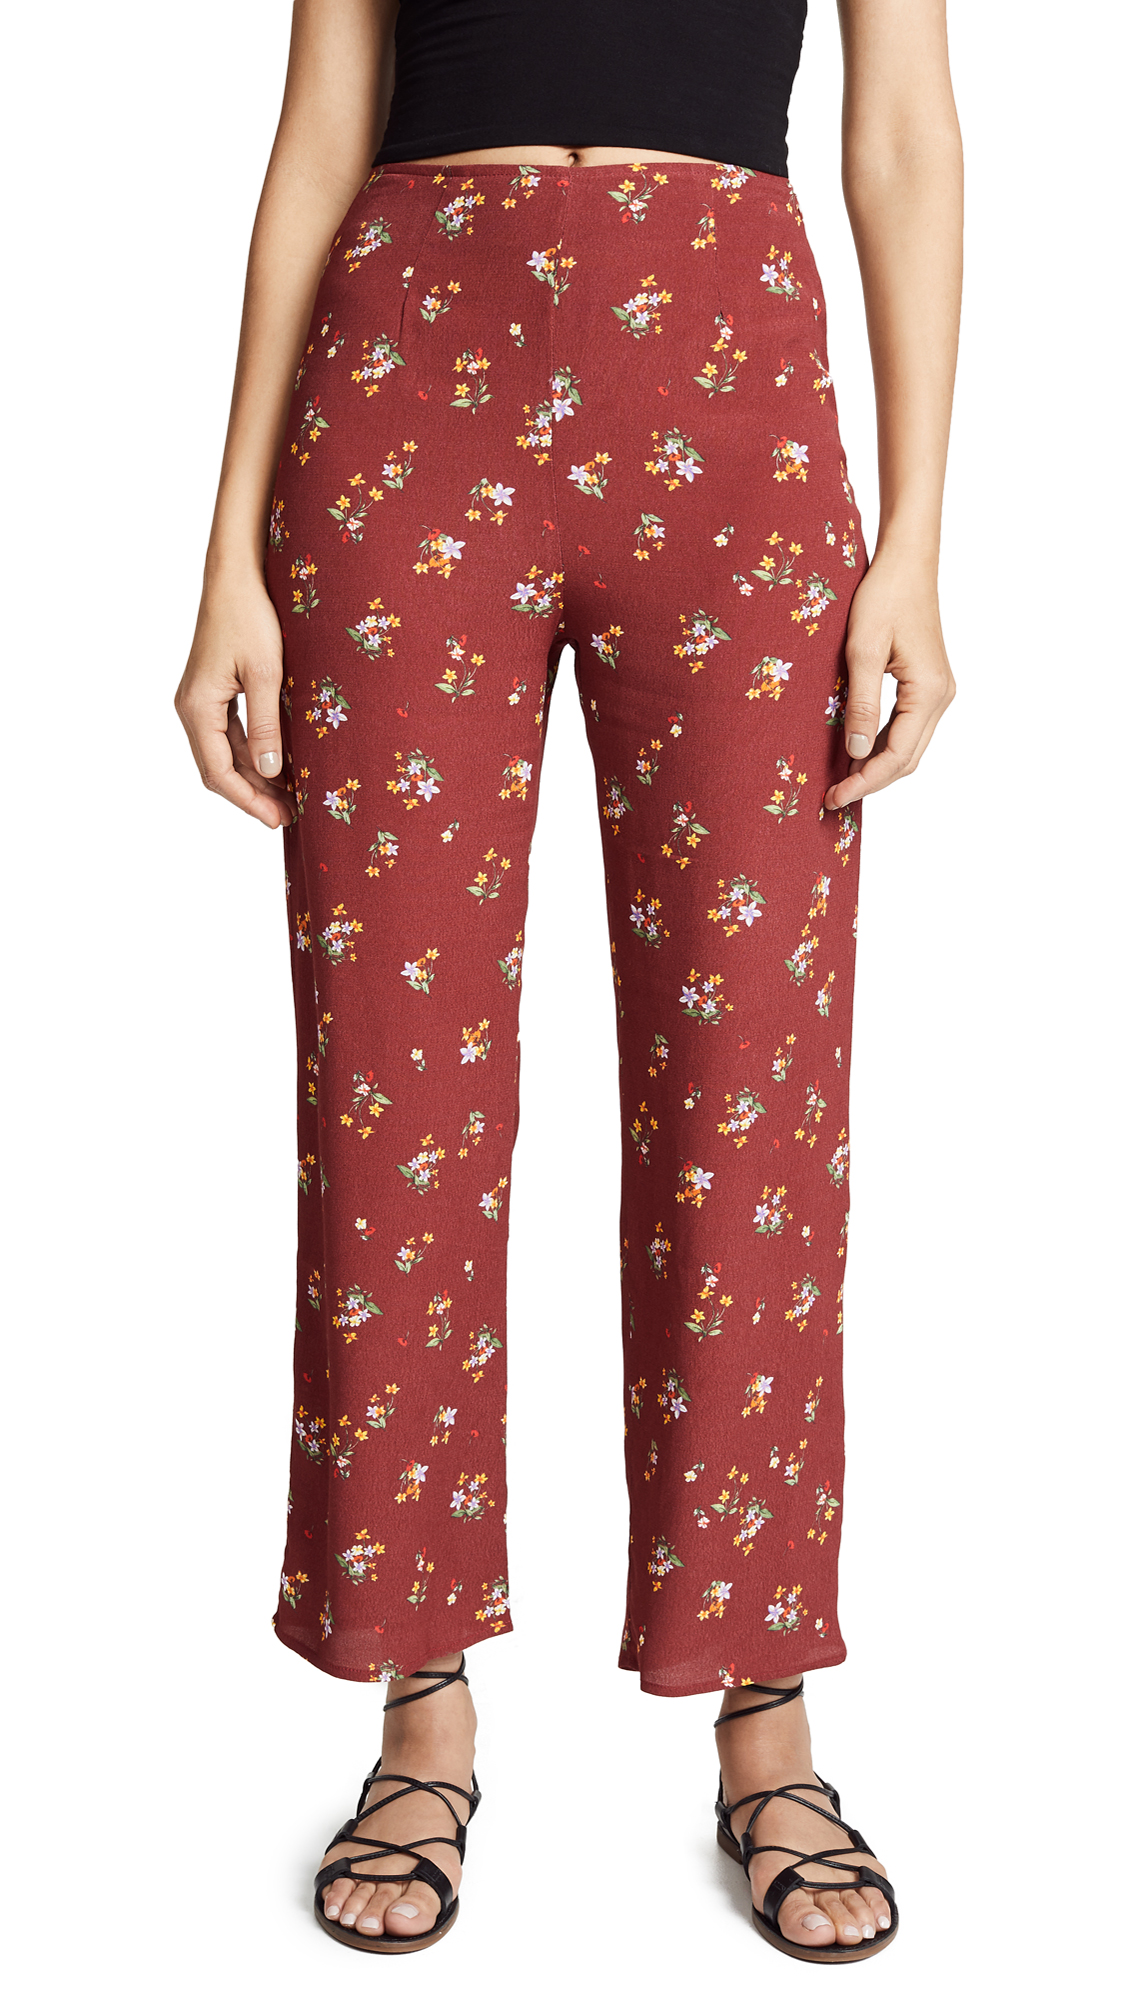 FLYNN SKYE Parker Pants in Autumn Bunches